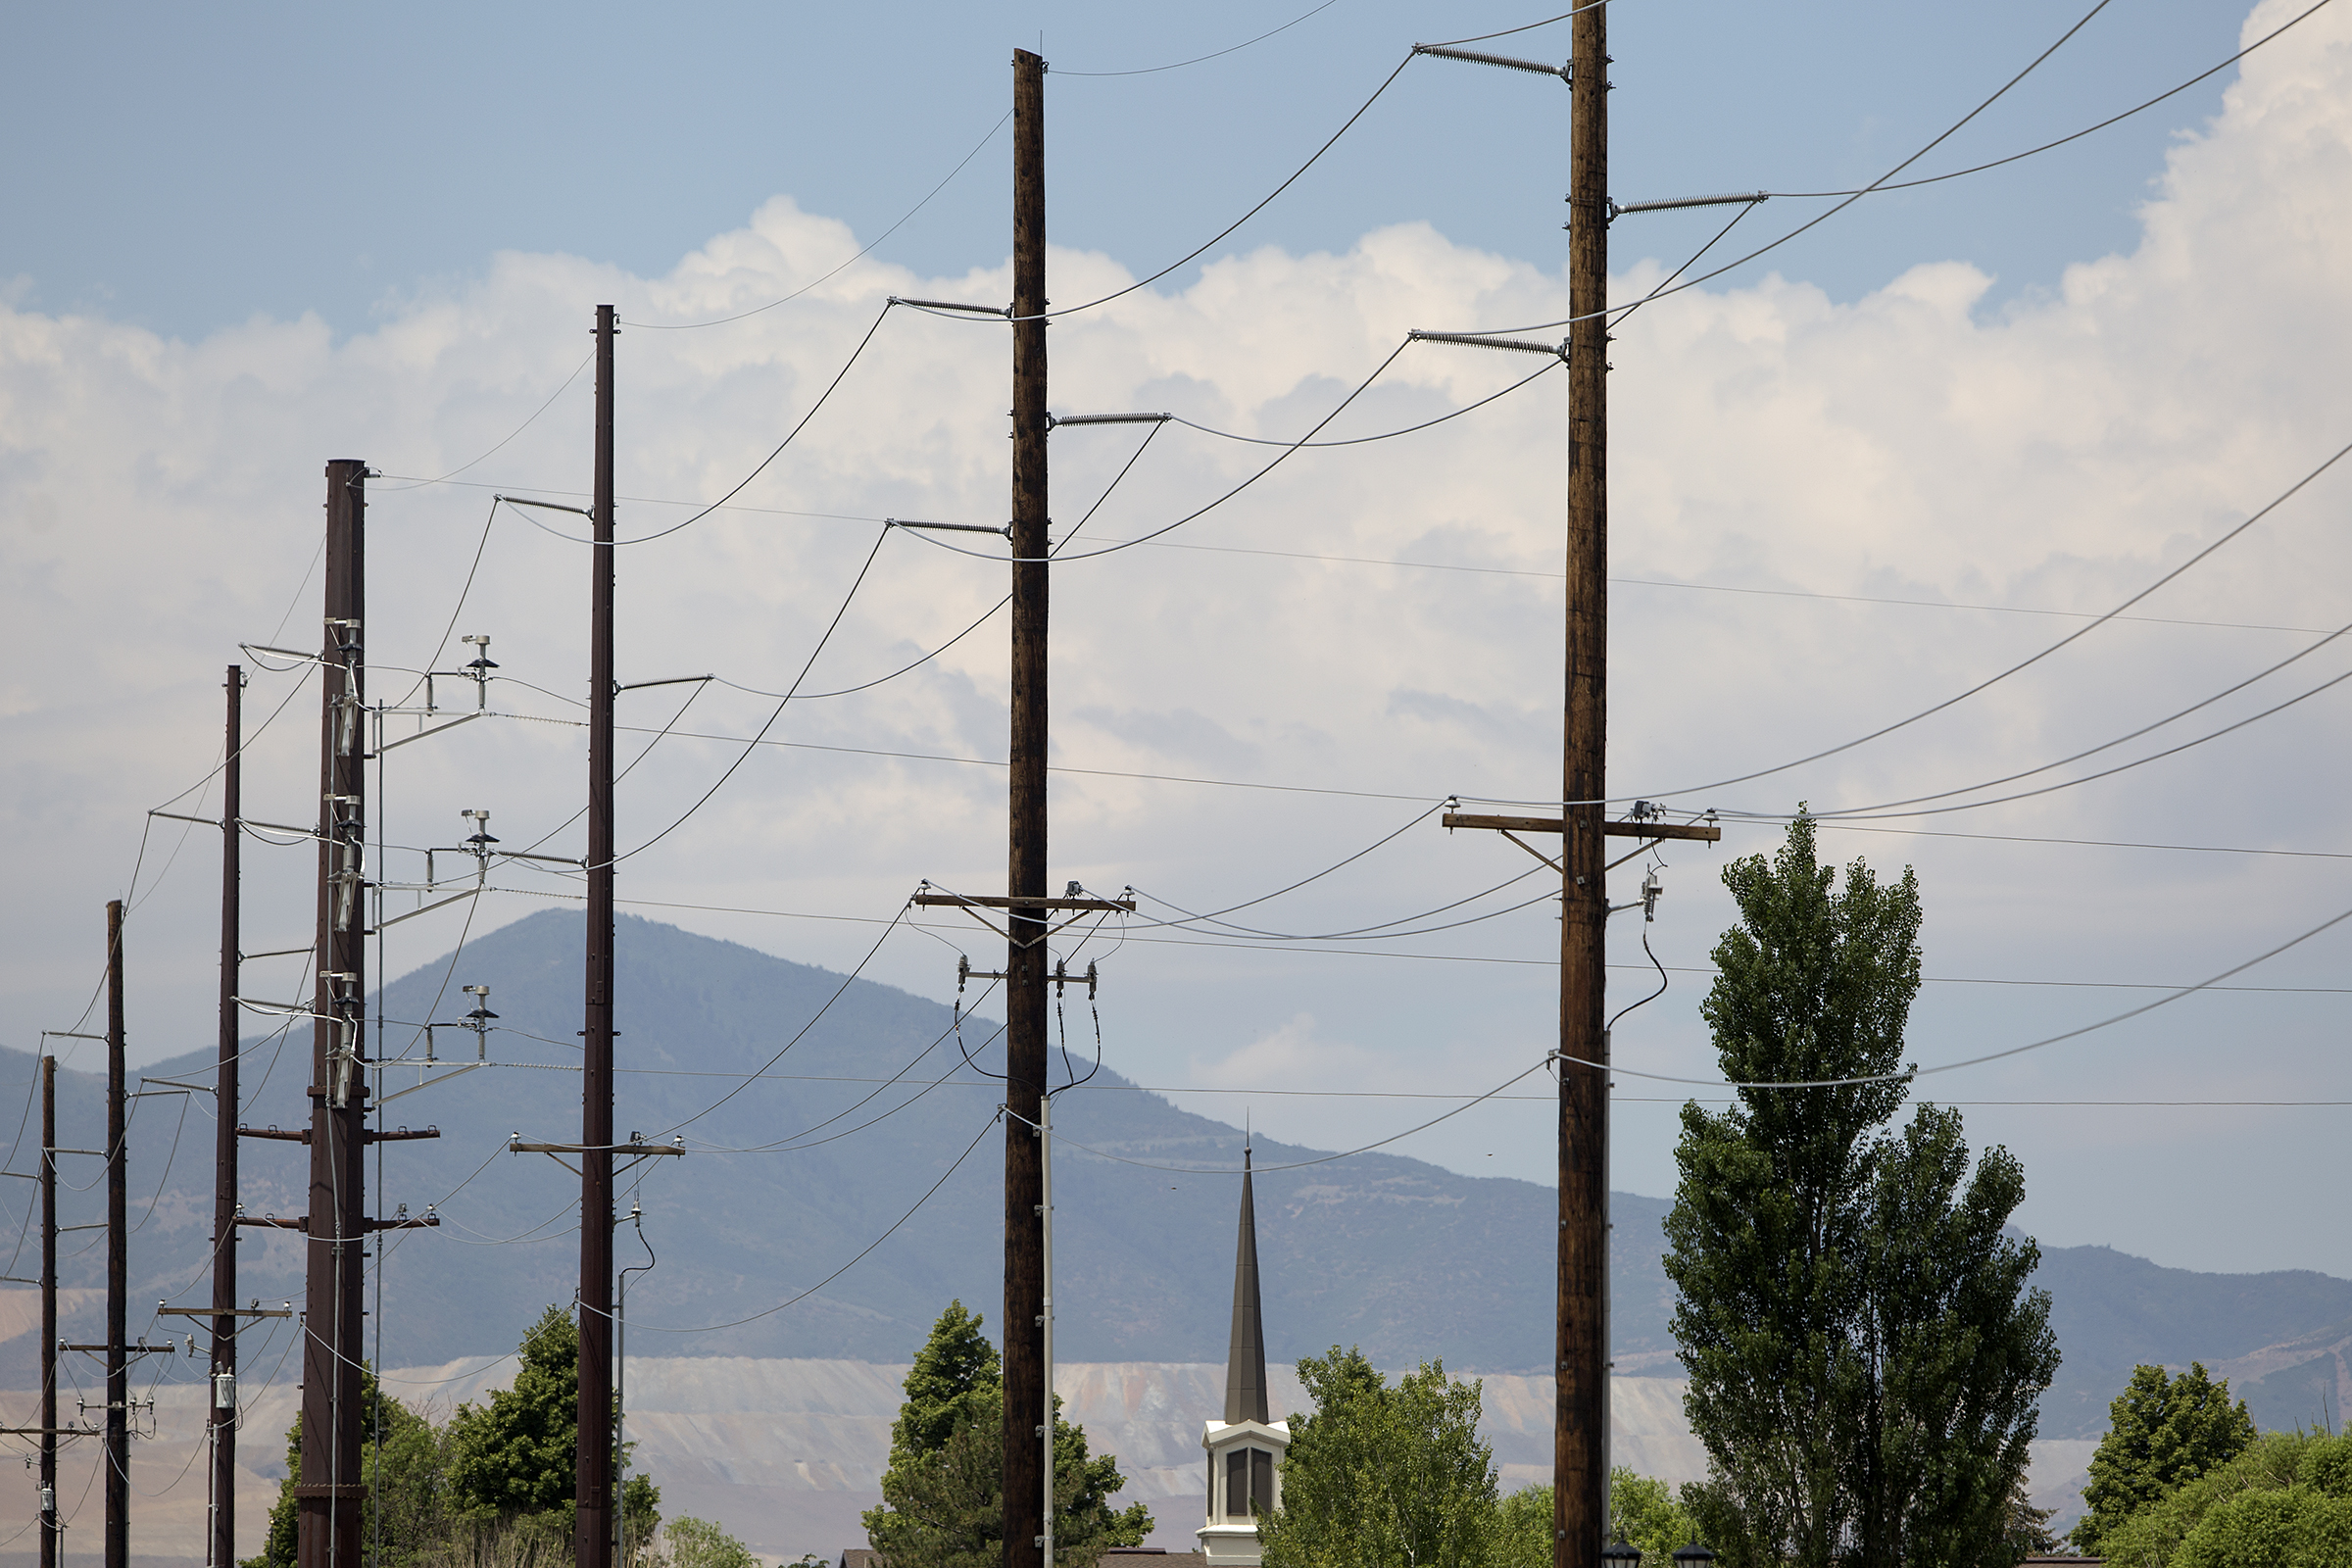 Power lines run along 11400 South in South Jordan on Monday, July 16, 2018. Residents are upset about Rocky Mountain Power's planned upgrade to the transmission poles, which will be taller and carry more power. The project is set to be completed in 2020.